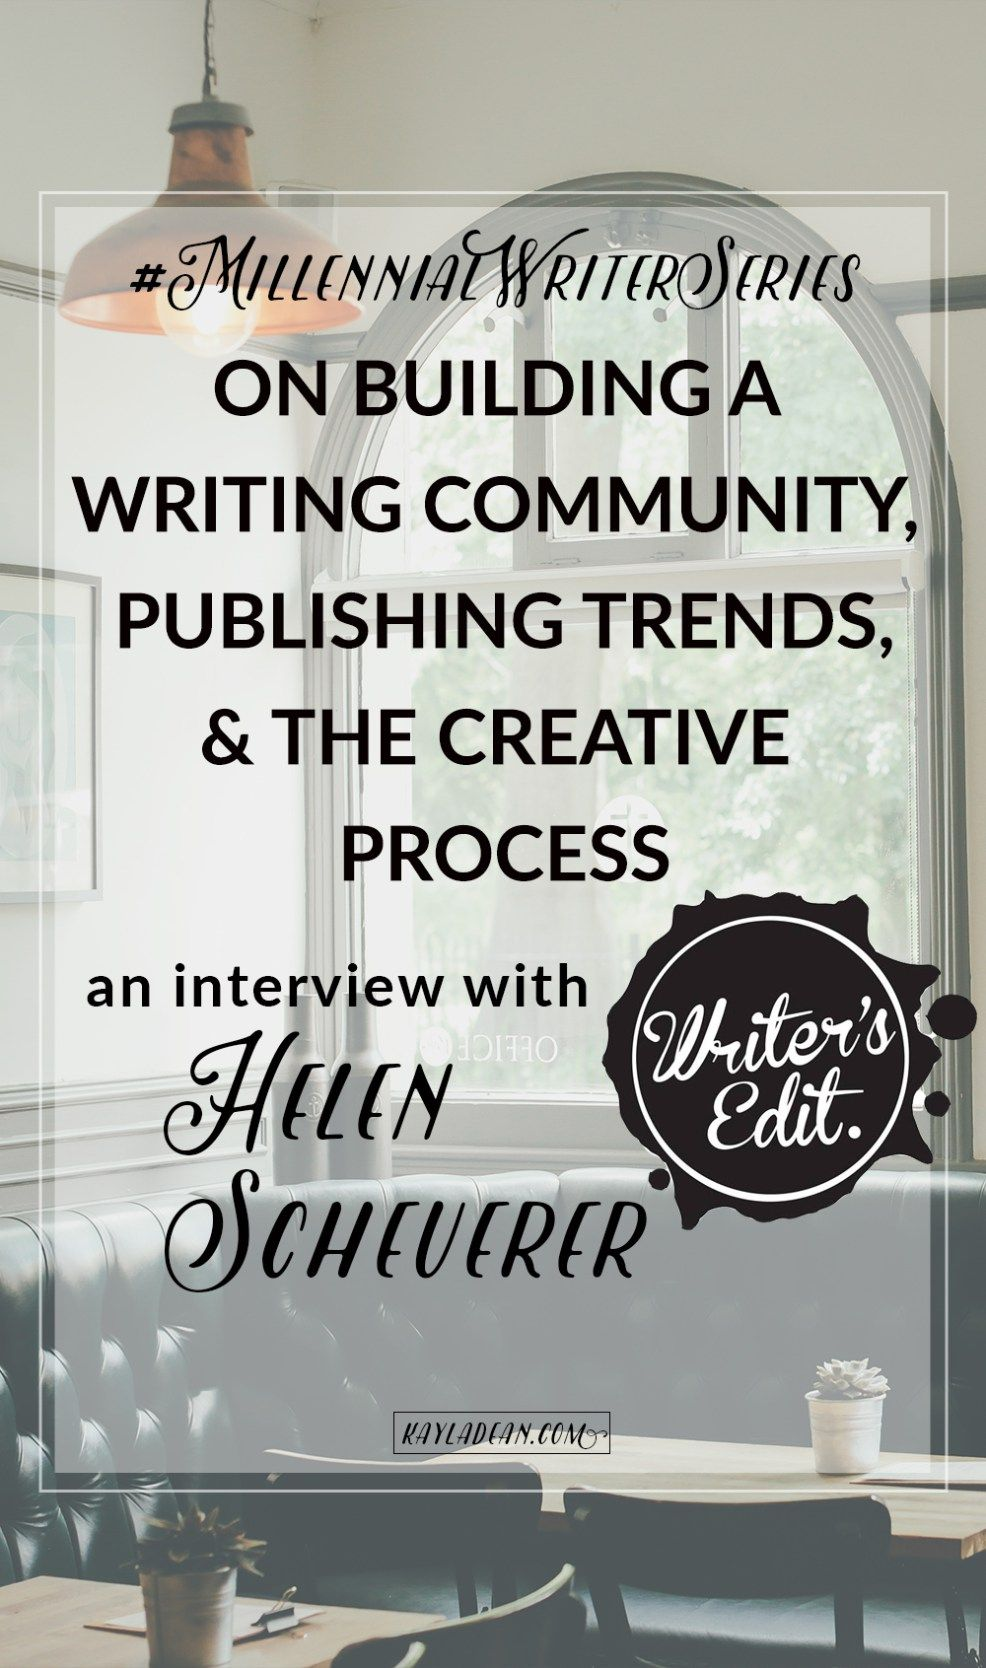 Get advice from Writer's Edit founder Helen Scheuerer, who will publish her third anthology and first novel later this year.